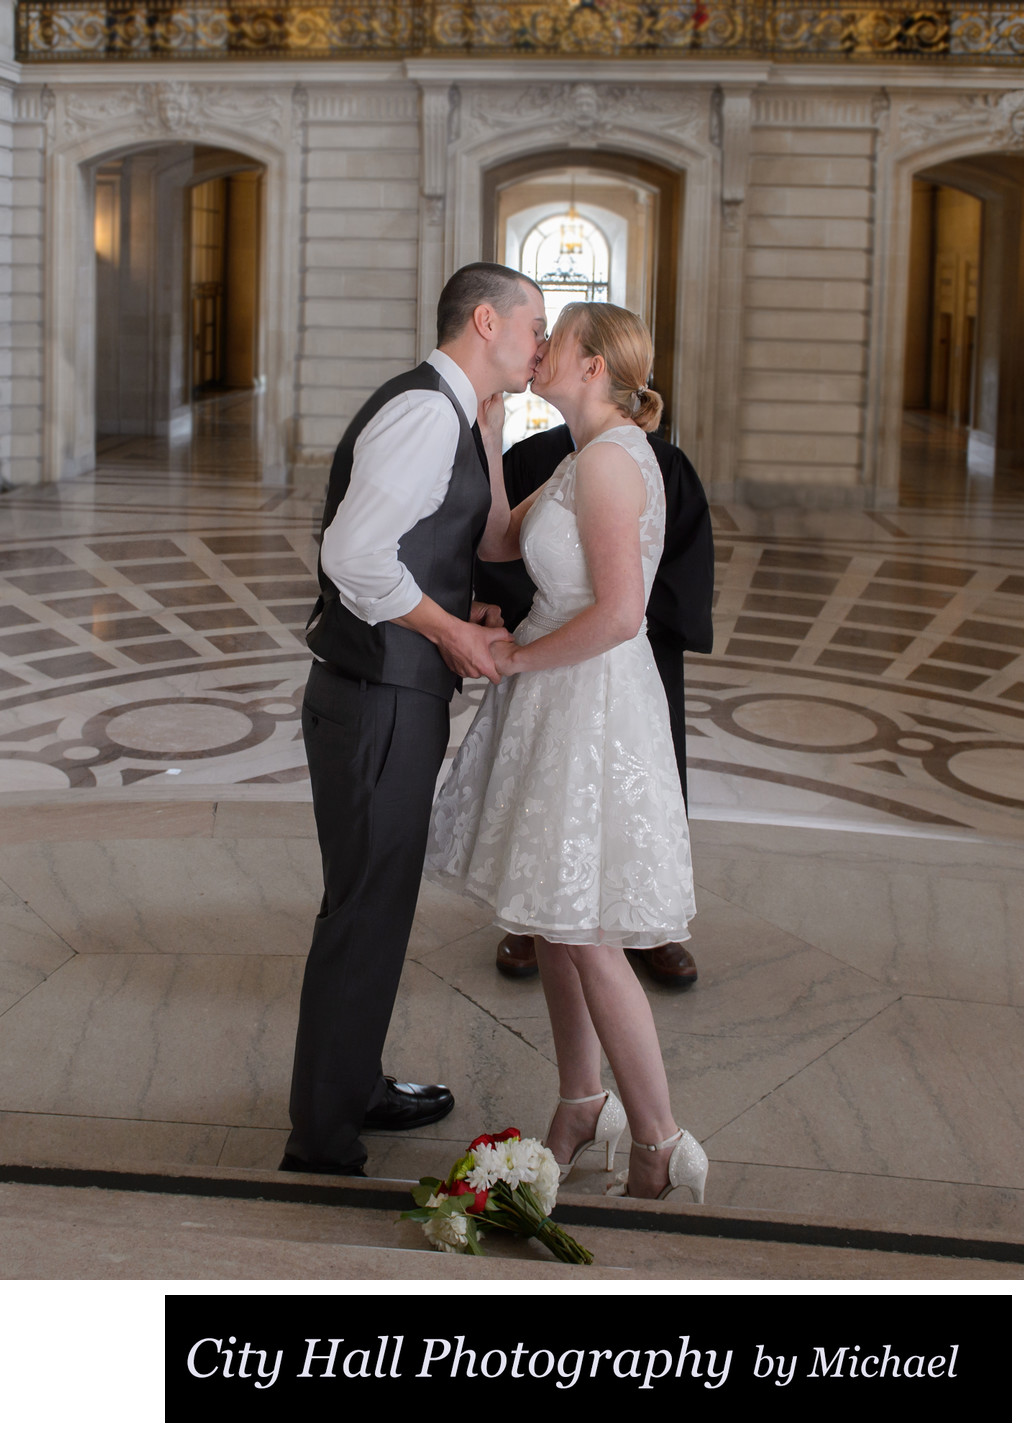 Wedding Photographer San Francisco City Hall - First Kiss